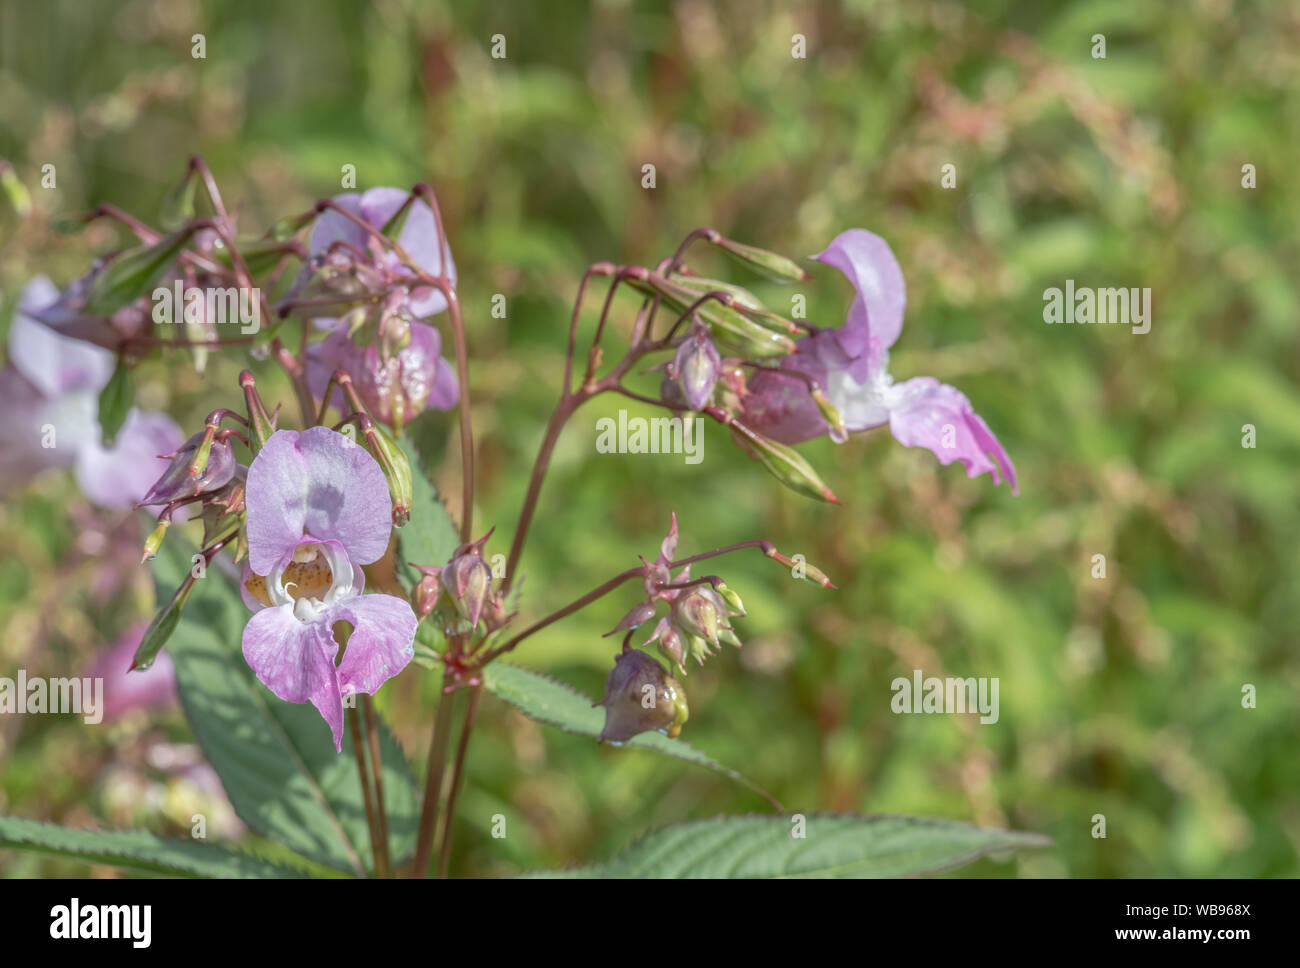 Flowers and upper leaves of the troublesome Himalayan Balsam / Impatiens glandulifera - which likes damp soils / ground, riversides, river banks. Stock Photo